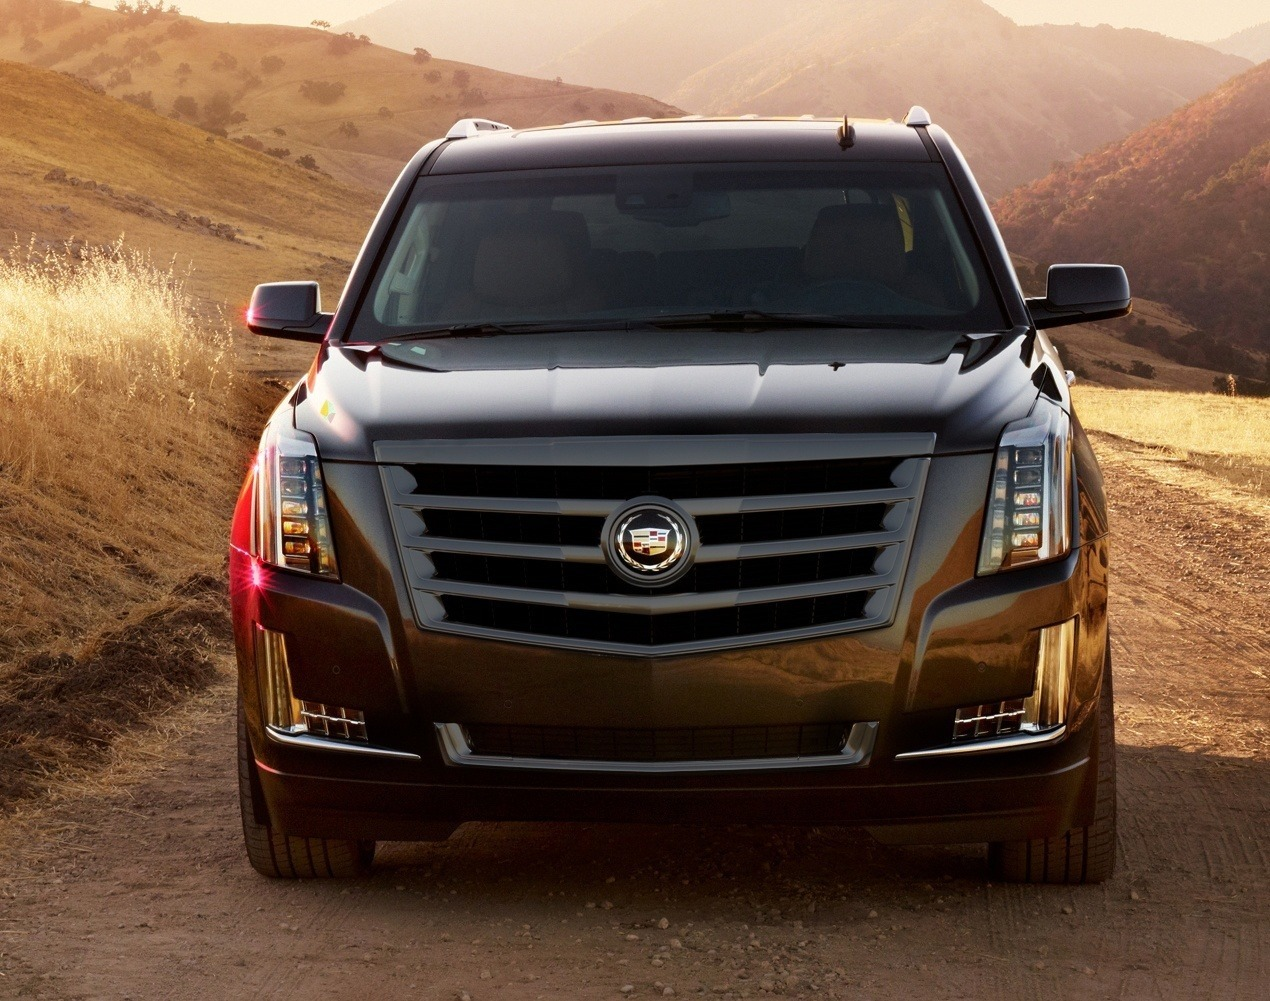 Cadillac cadillac escalade weight : Comparison - Lexus RX 450h 2016 - vs - Cadillac Escalade ESV ...